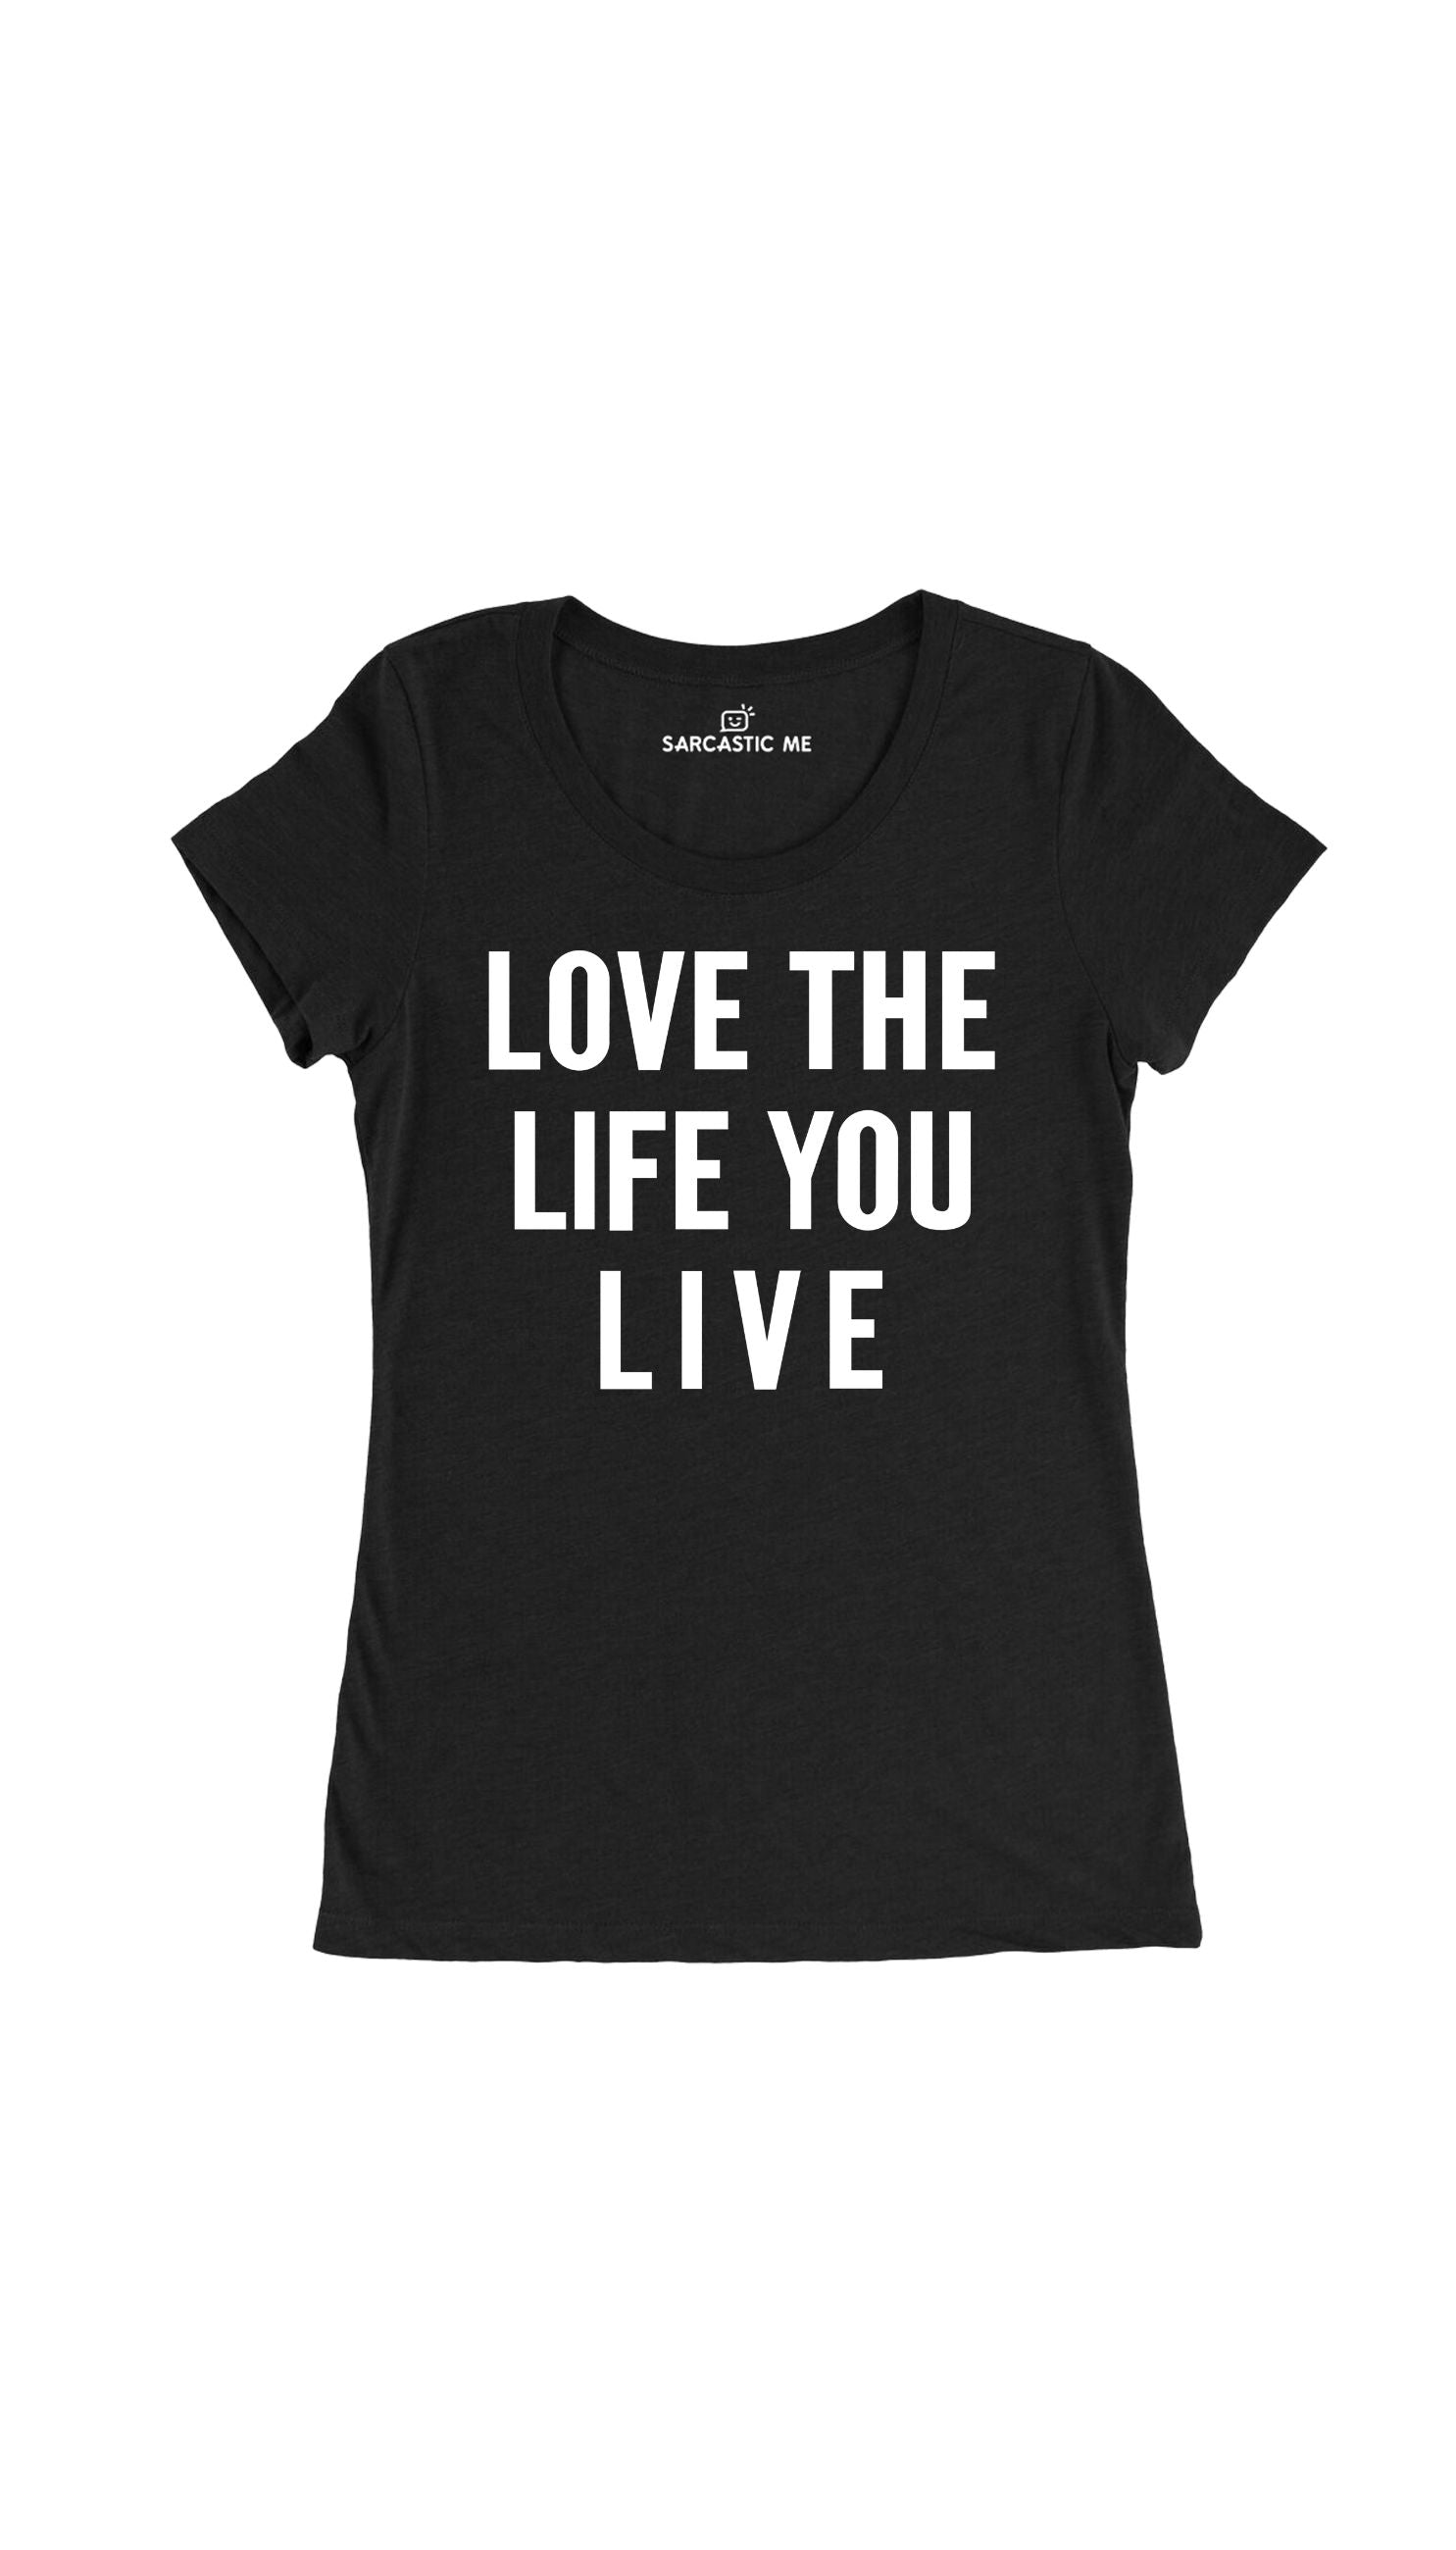 Love The Life You Live Black Women's T-Shirt | Sarcastic Me